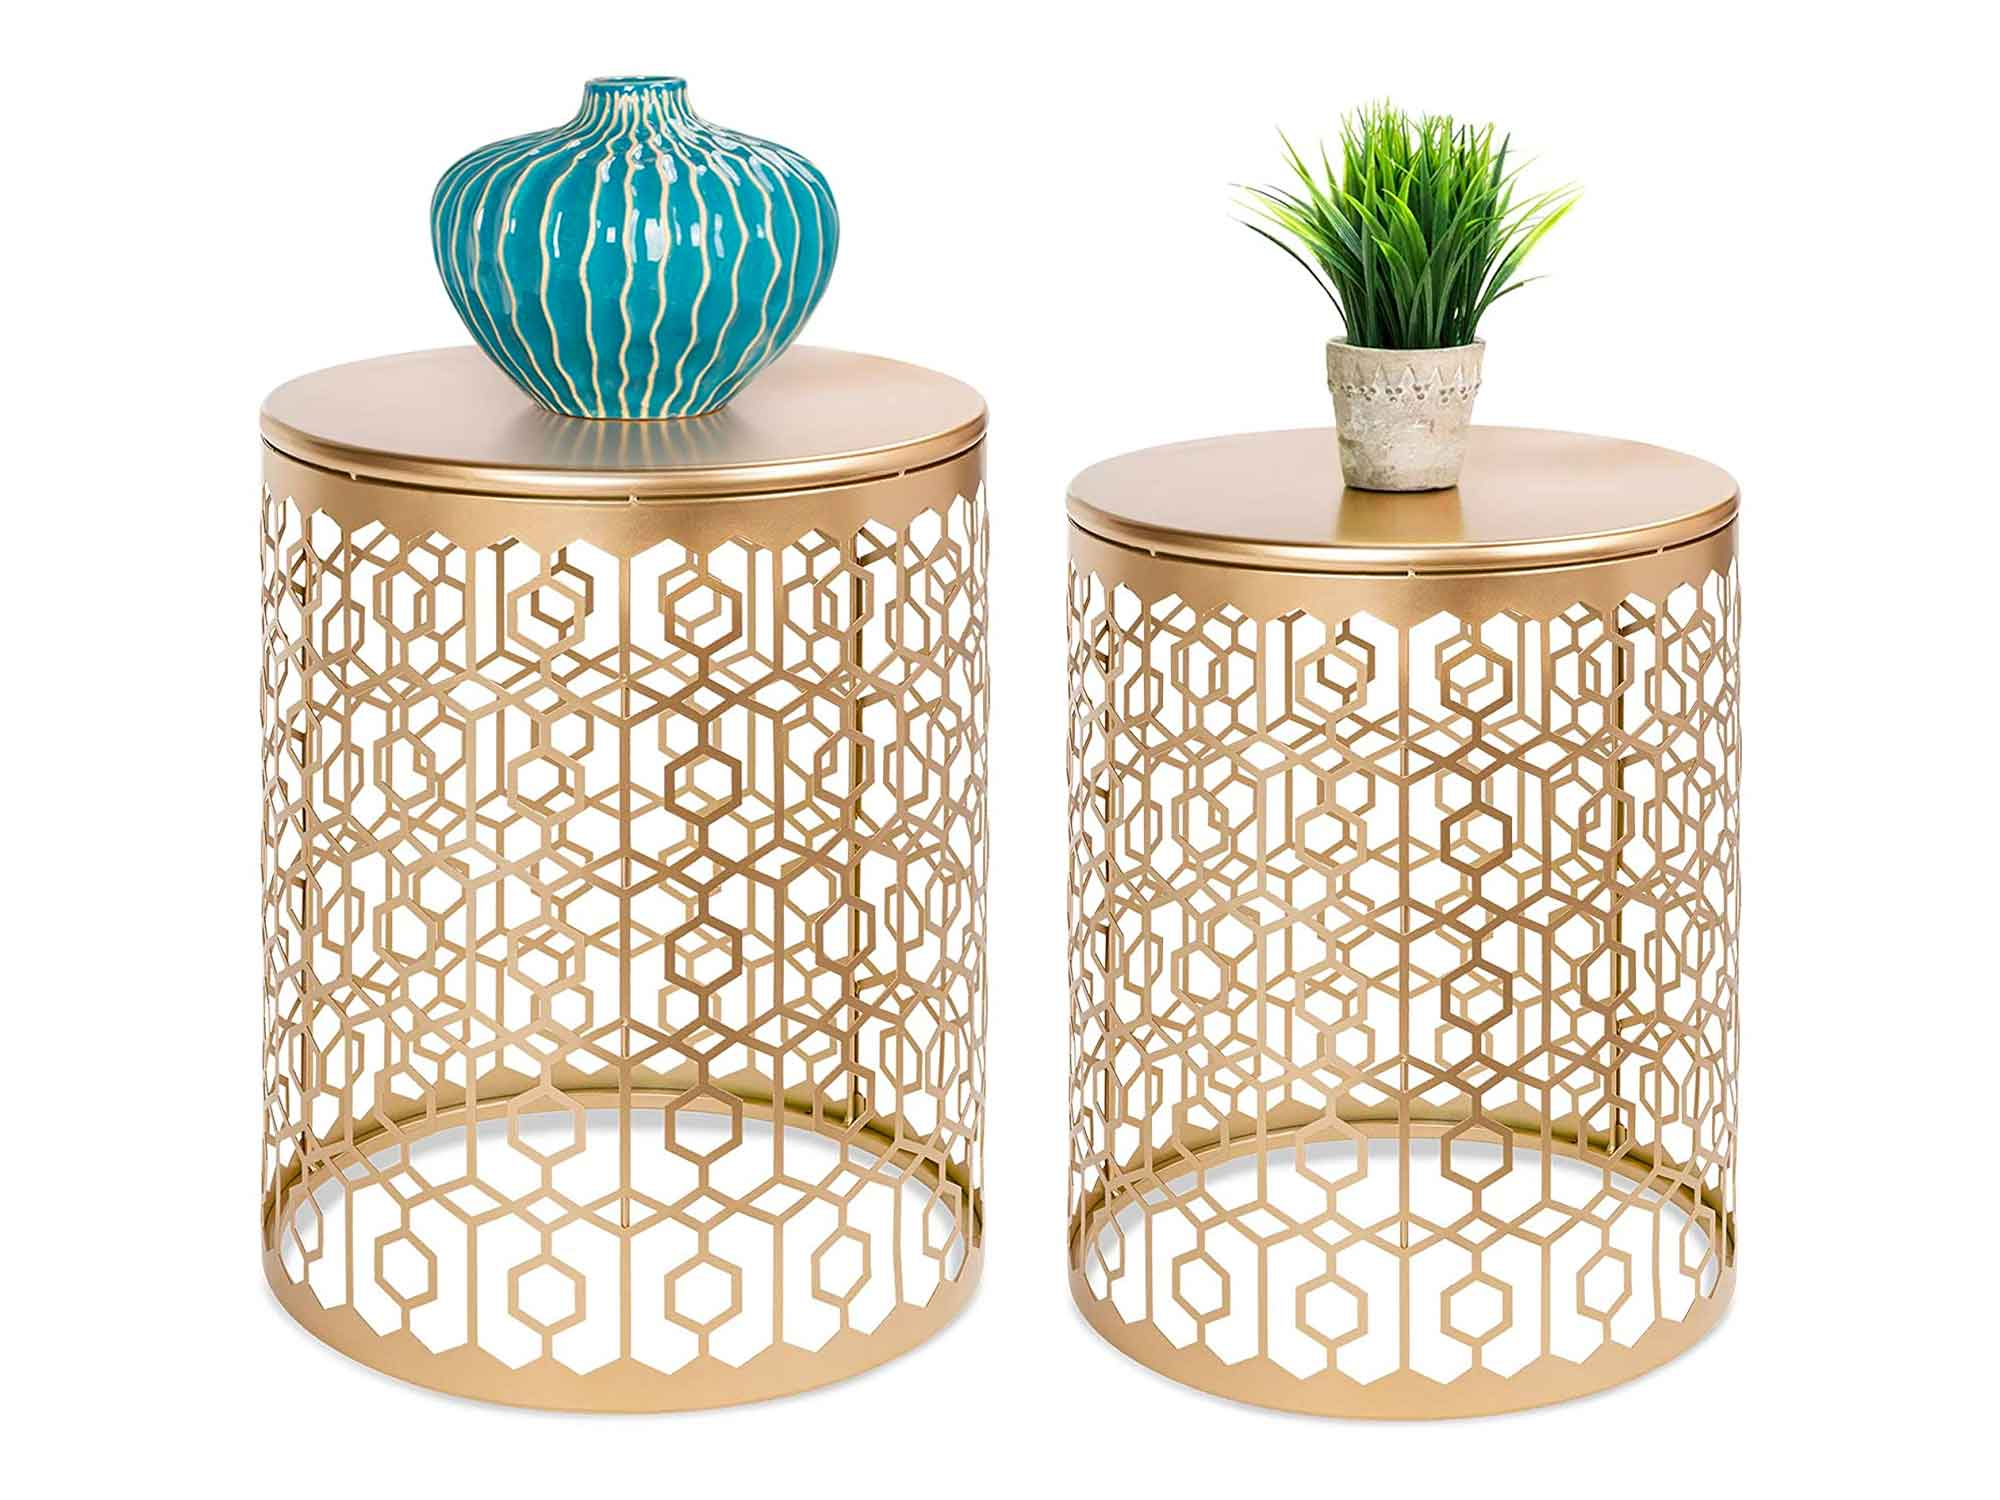 Best Choice Products Set of 2 Decorative Round Accent Side Coffee End Table Nightstands for Living Room, Bedroom, Office, Home Décor w/Nesting Design, Hexagon & Diamond Patterns - Gold